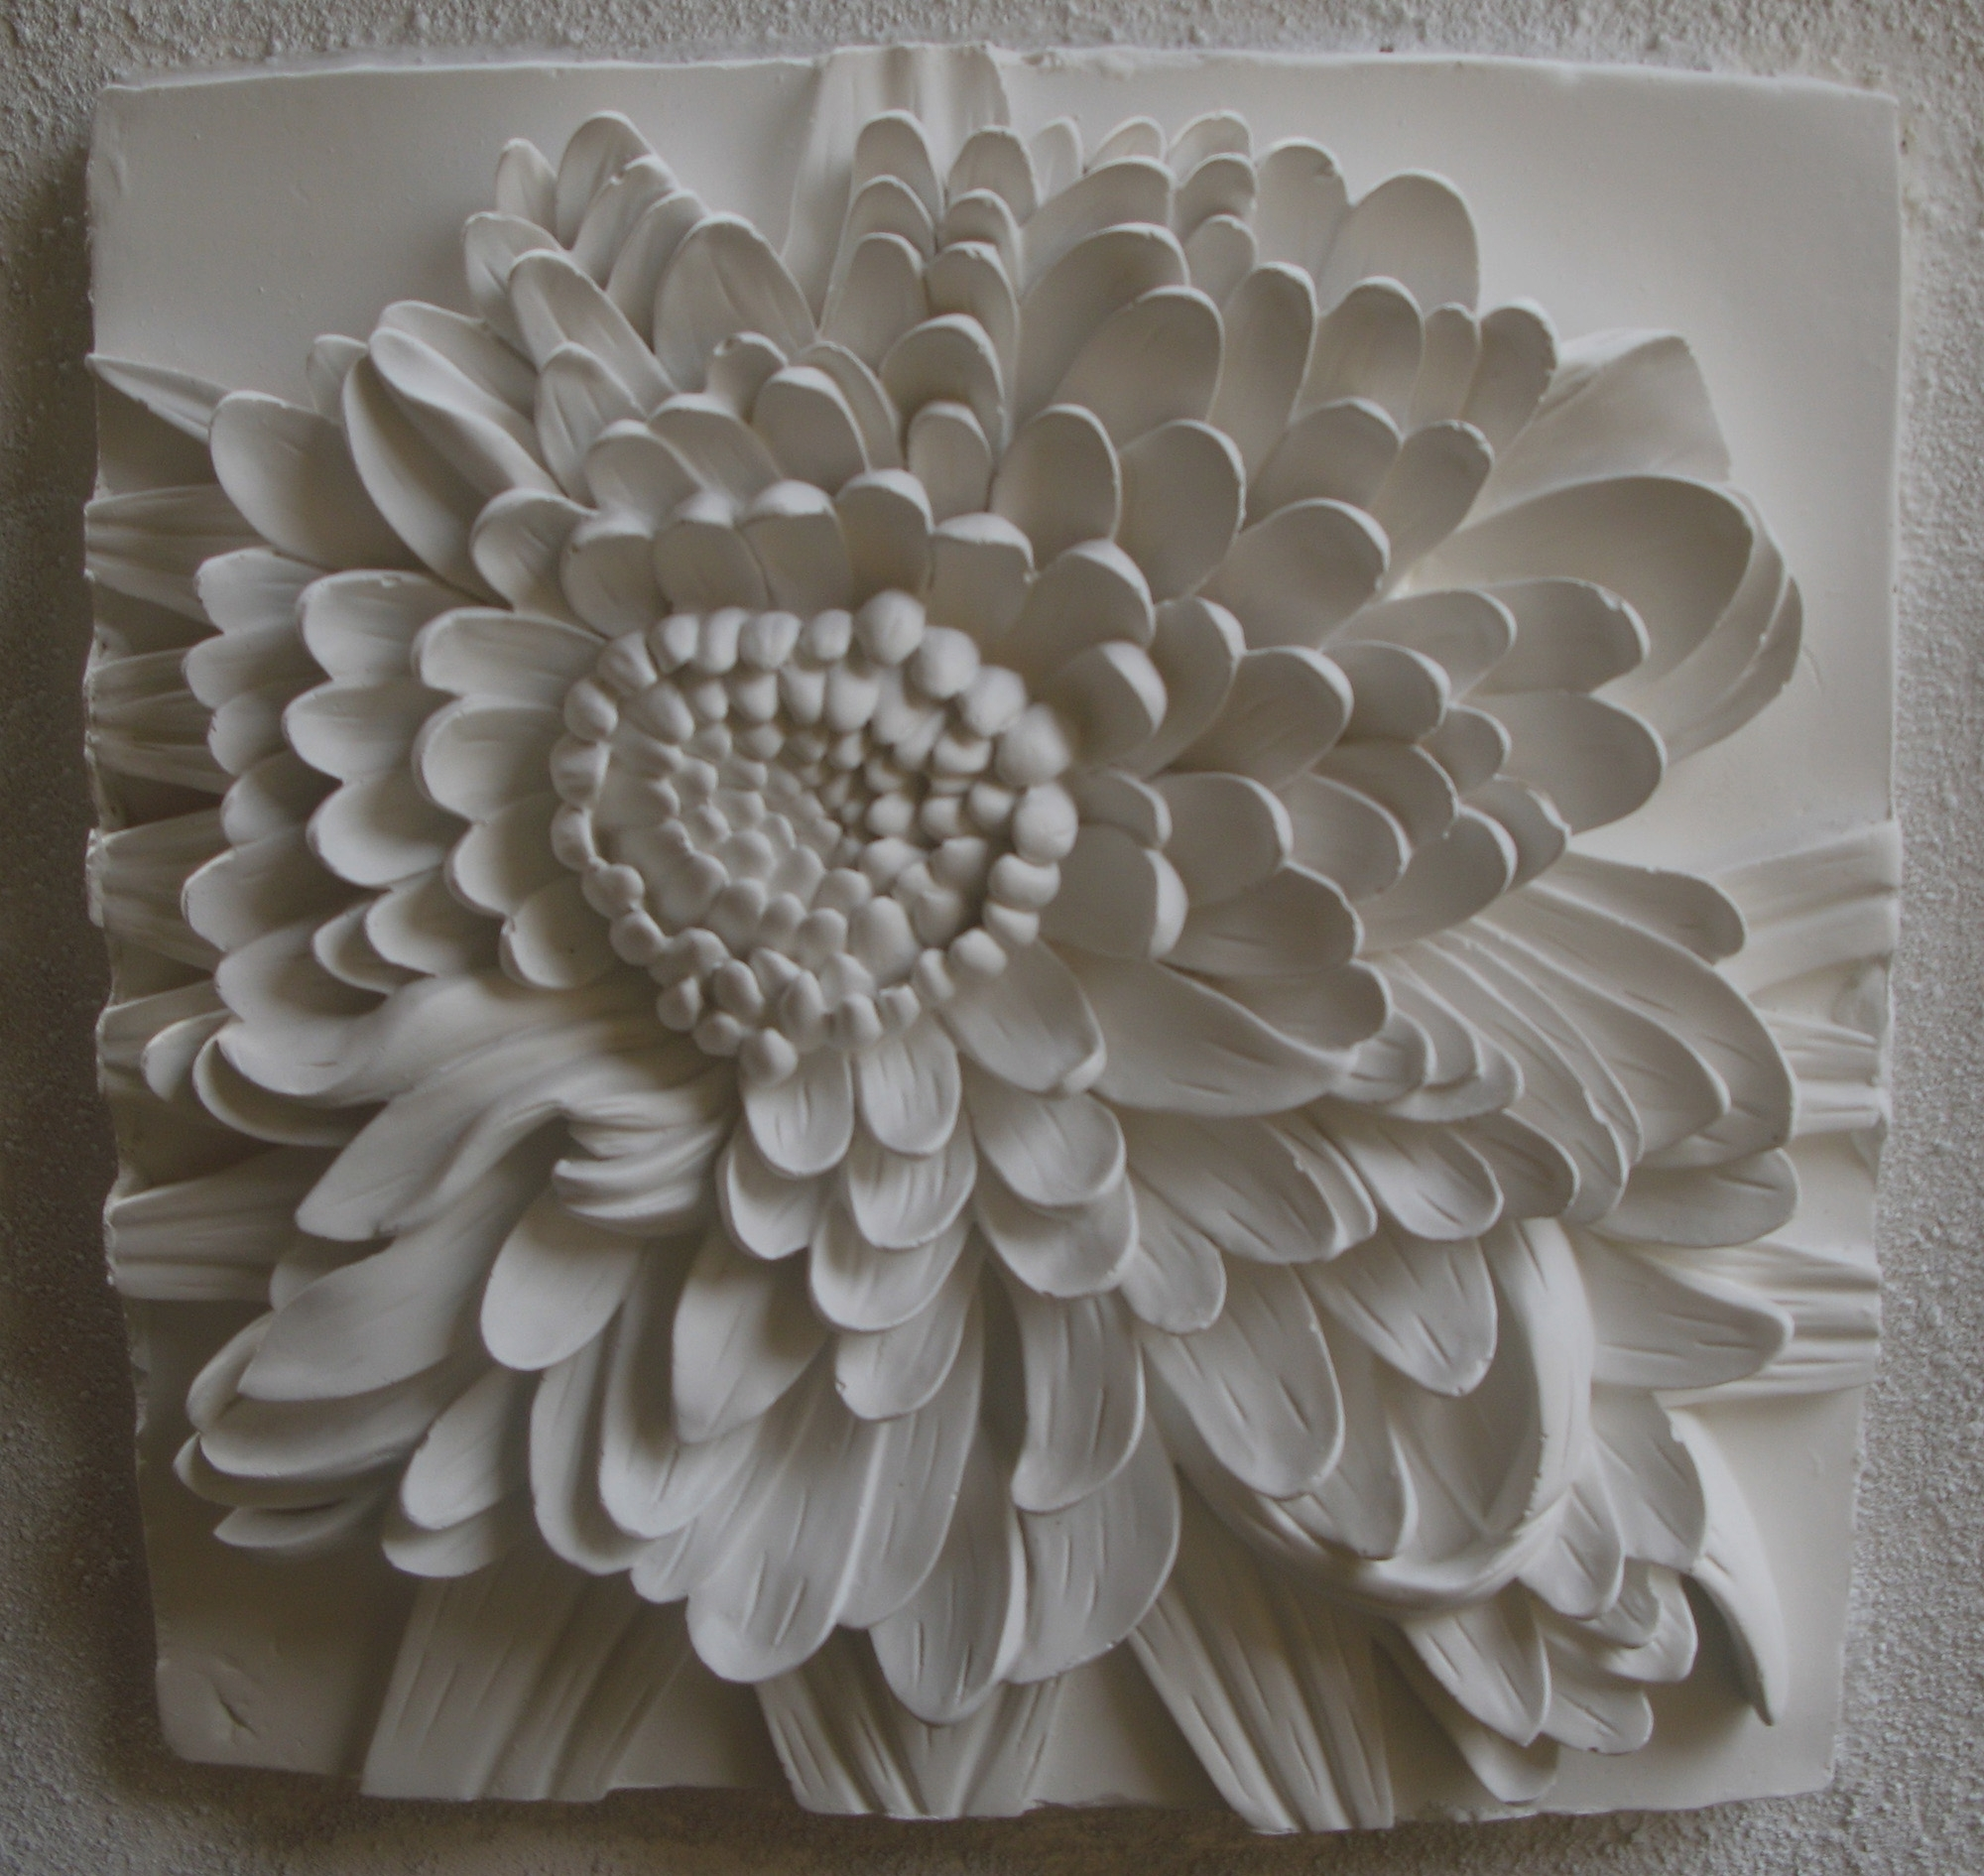 Excellent Ideas 3D Flower Wall Art Metal Paper Ceramic Diy Inside Latest Ceramic Flower Wall Art (View 6 of 15)